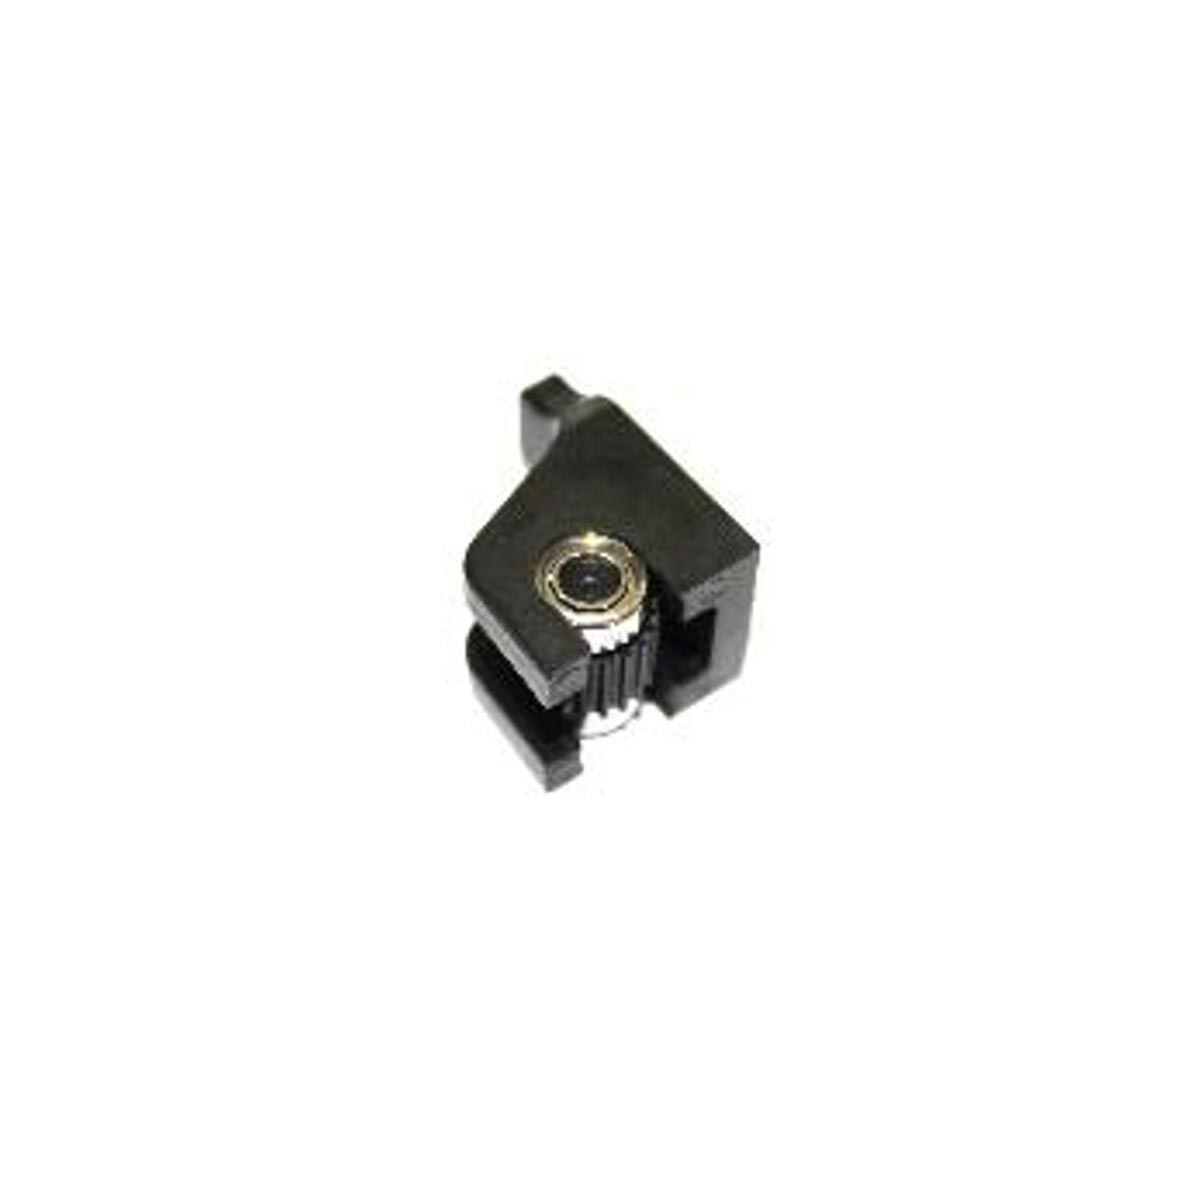 X Limit Switch 400 m - 3 pin